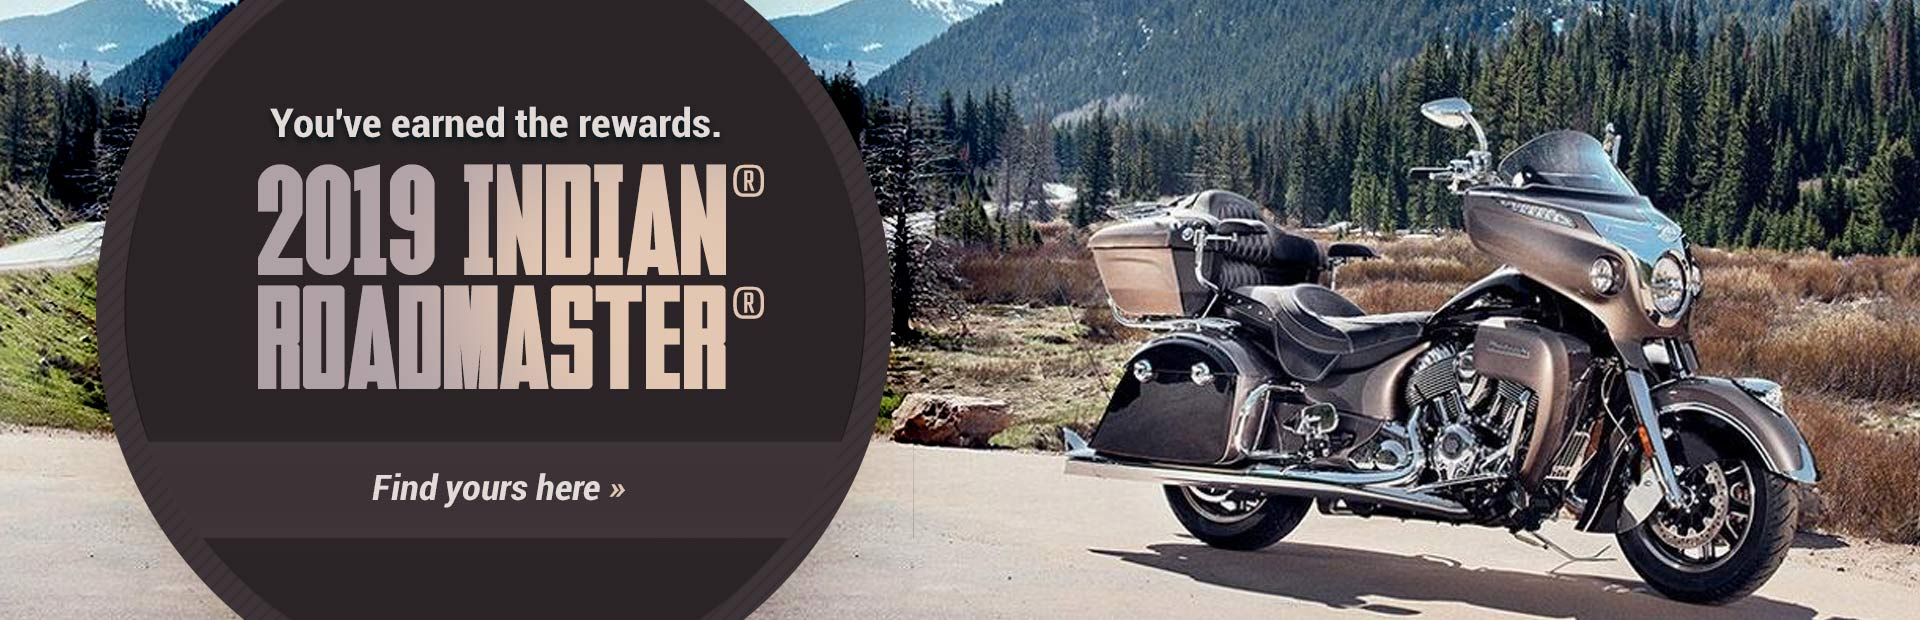 2019 Indian® Roadmaster®: Click here to view the models.